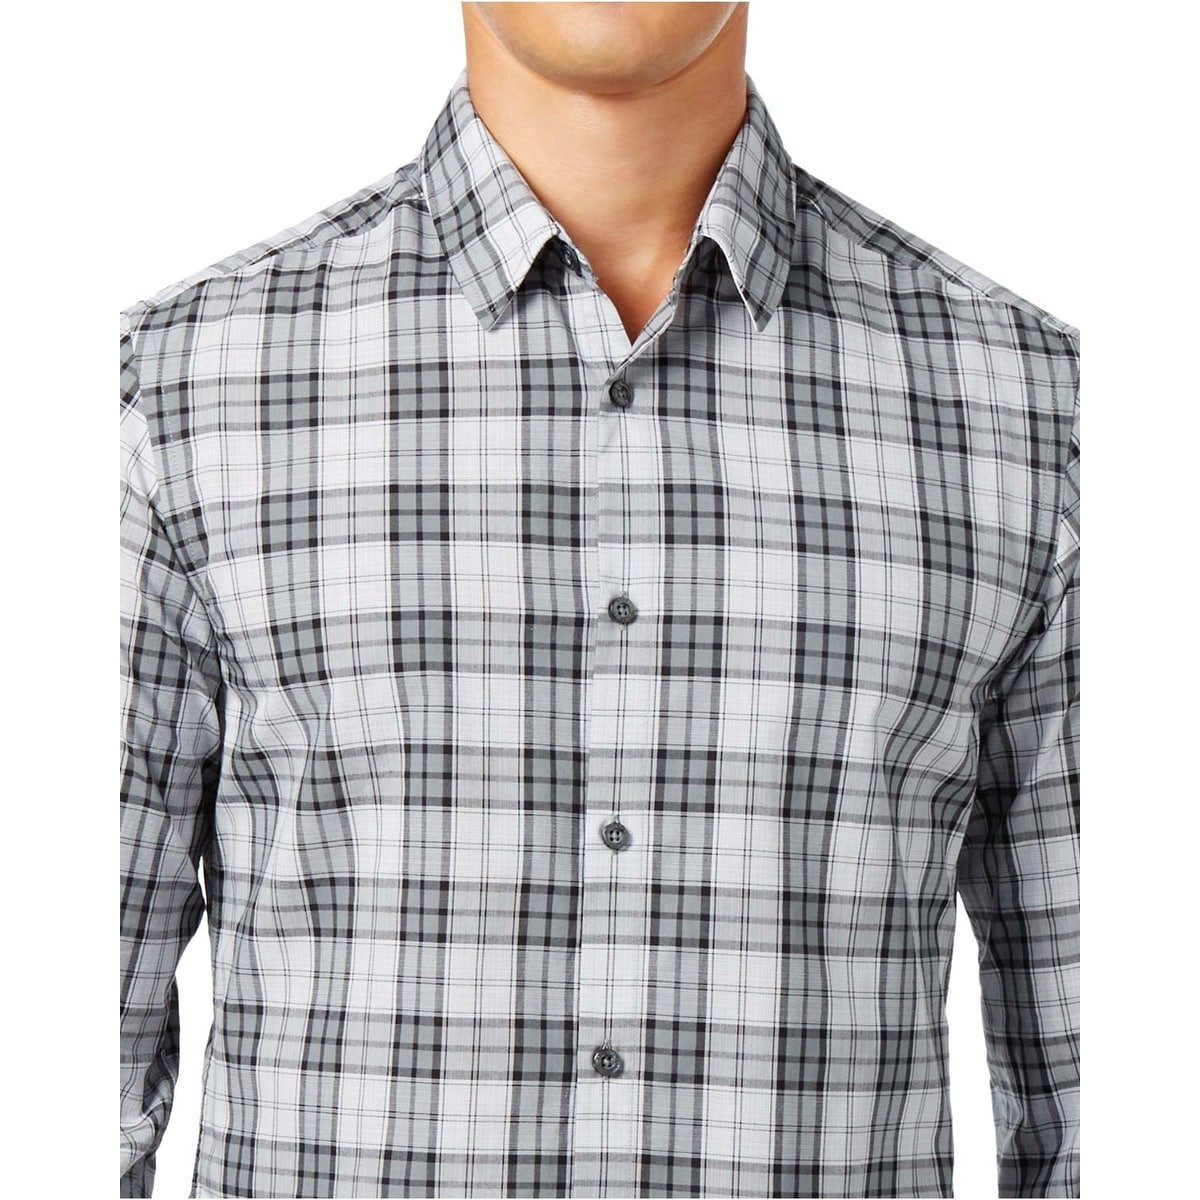 6a9a82b8b Shop Hugo Boss Green Label Briar Valiant Plaid Long Sleeve Shirt Grey - Free  Shipping Today - Overstock - 17306350